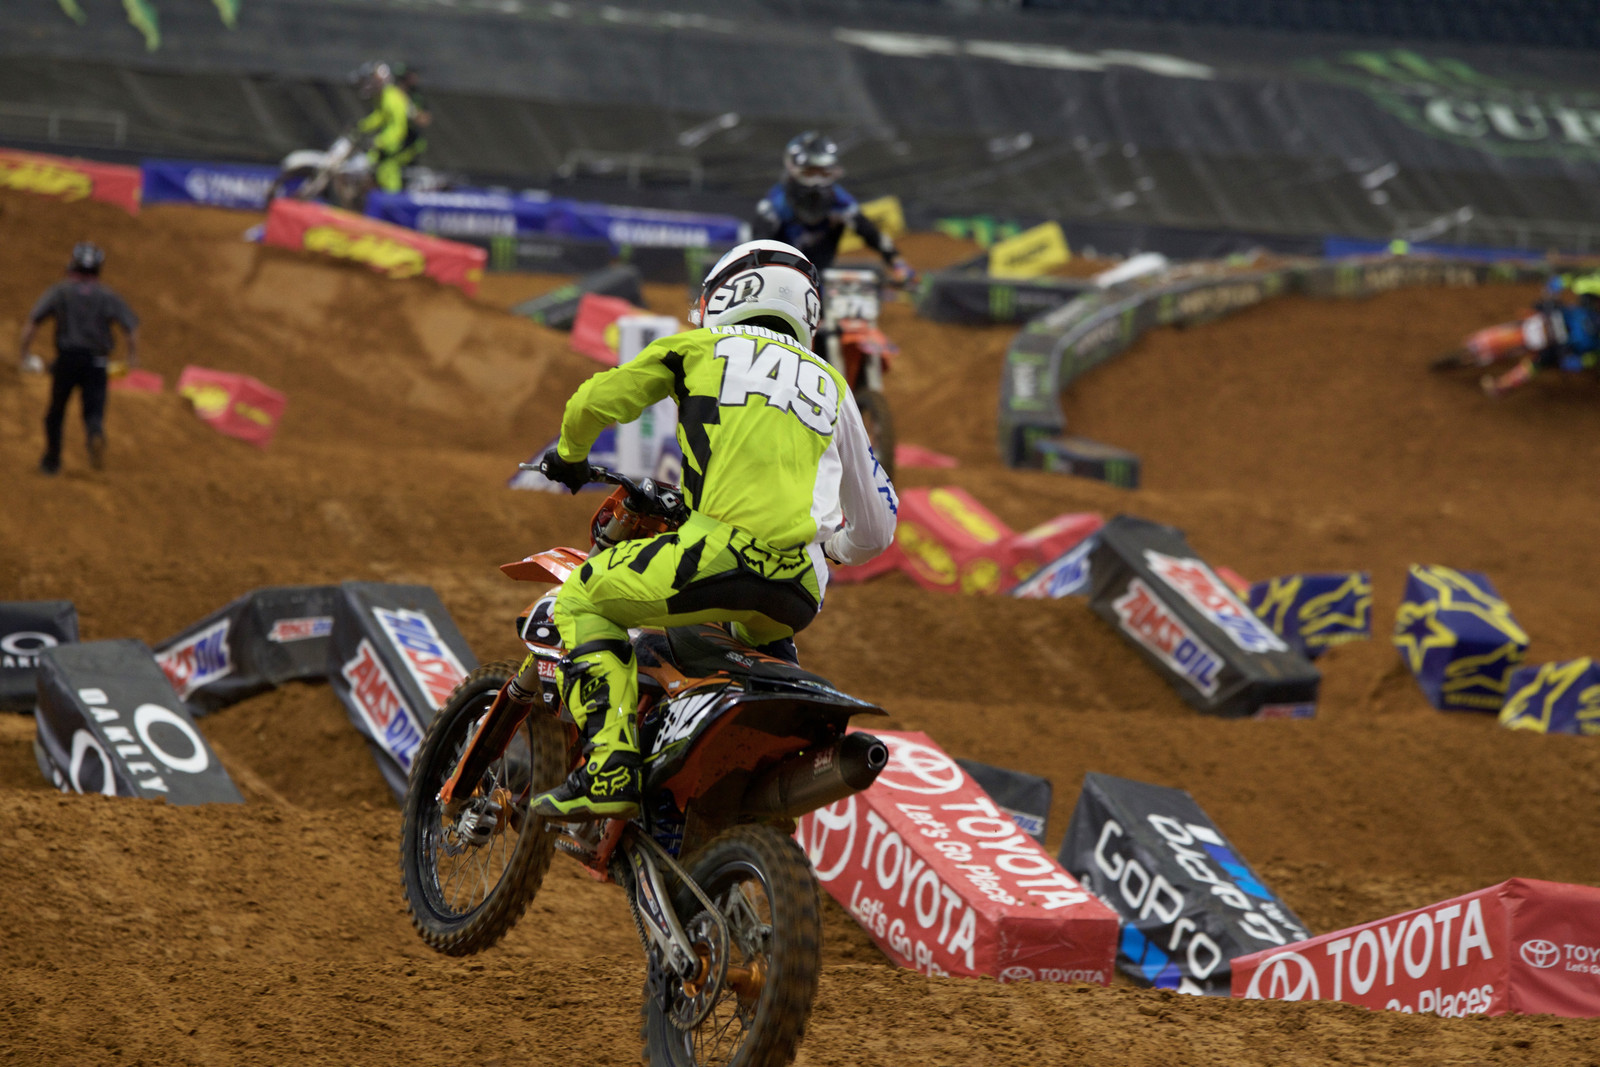 Tallon LaFountaine - Views from the Stands - 2017 Arlington SX - Motocross Pictures - Vital MX